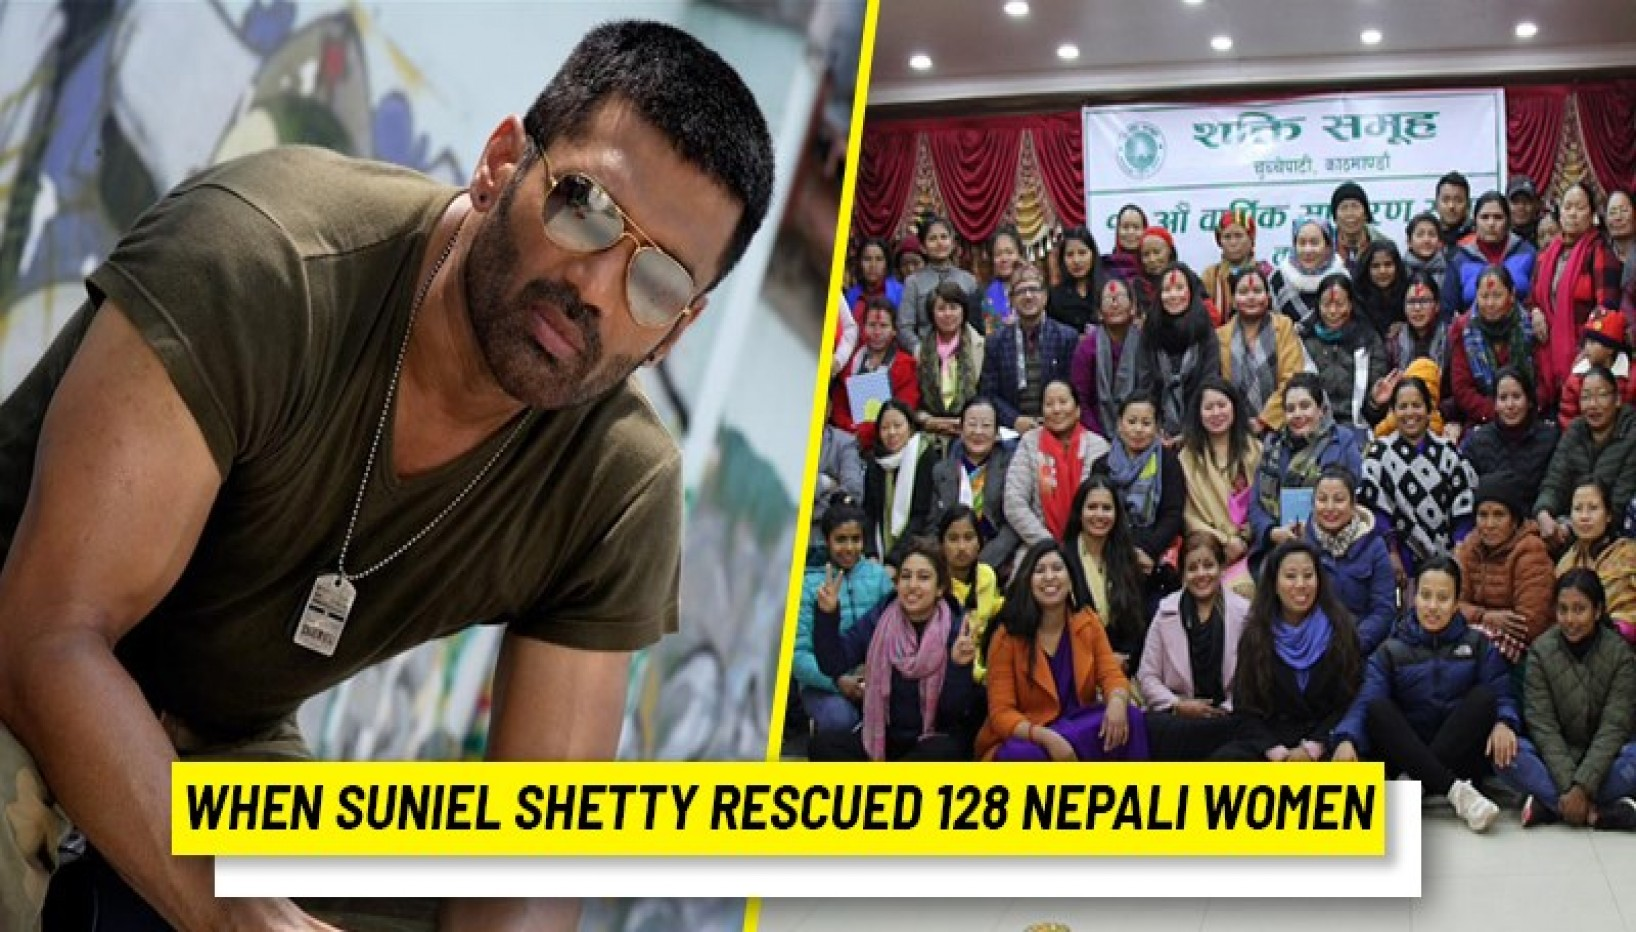 Real Life Heroes: The Story Of How Suniel Shetty Rescued 128 Sex Trafficked Nepali Women